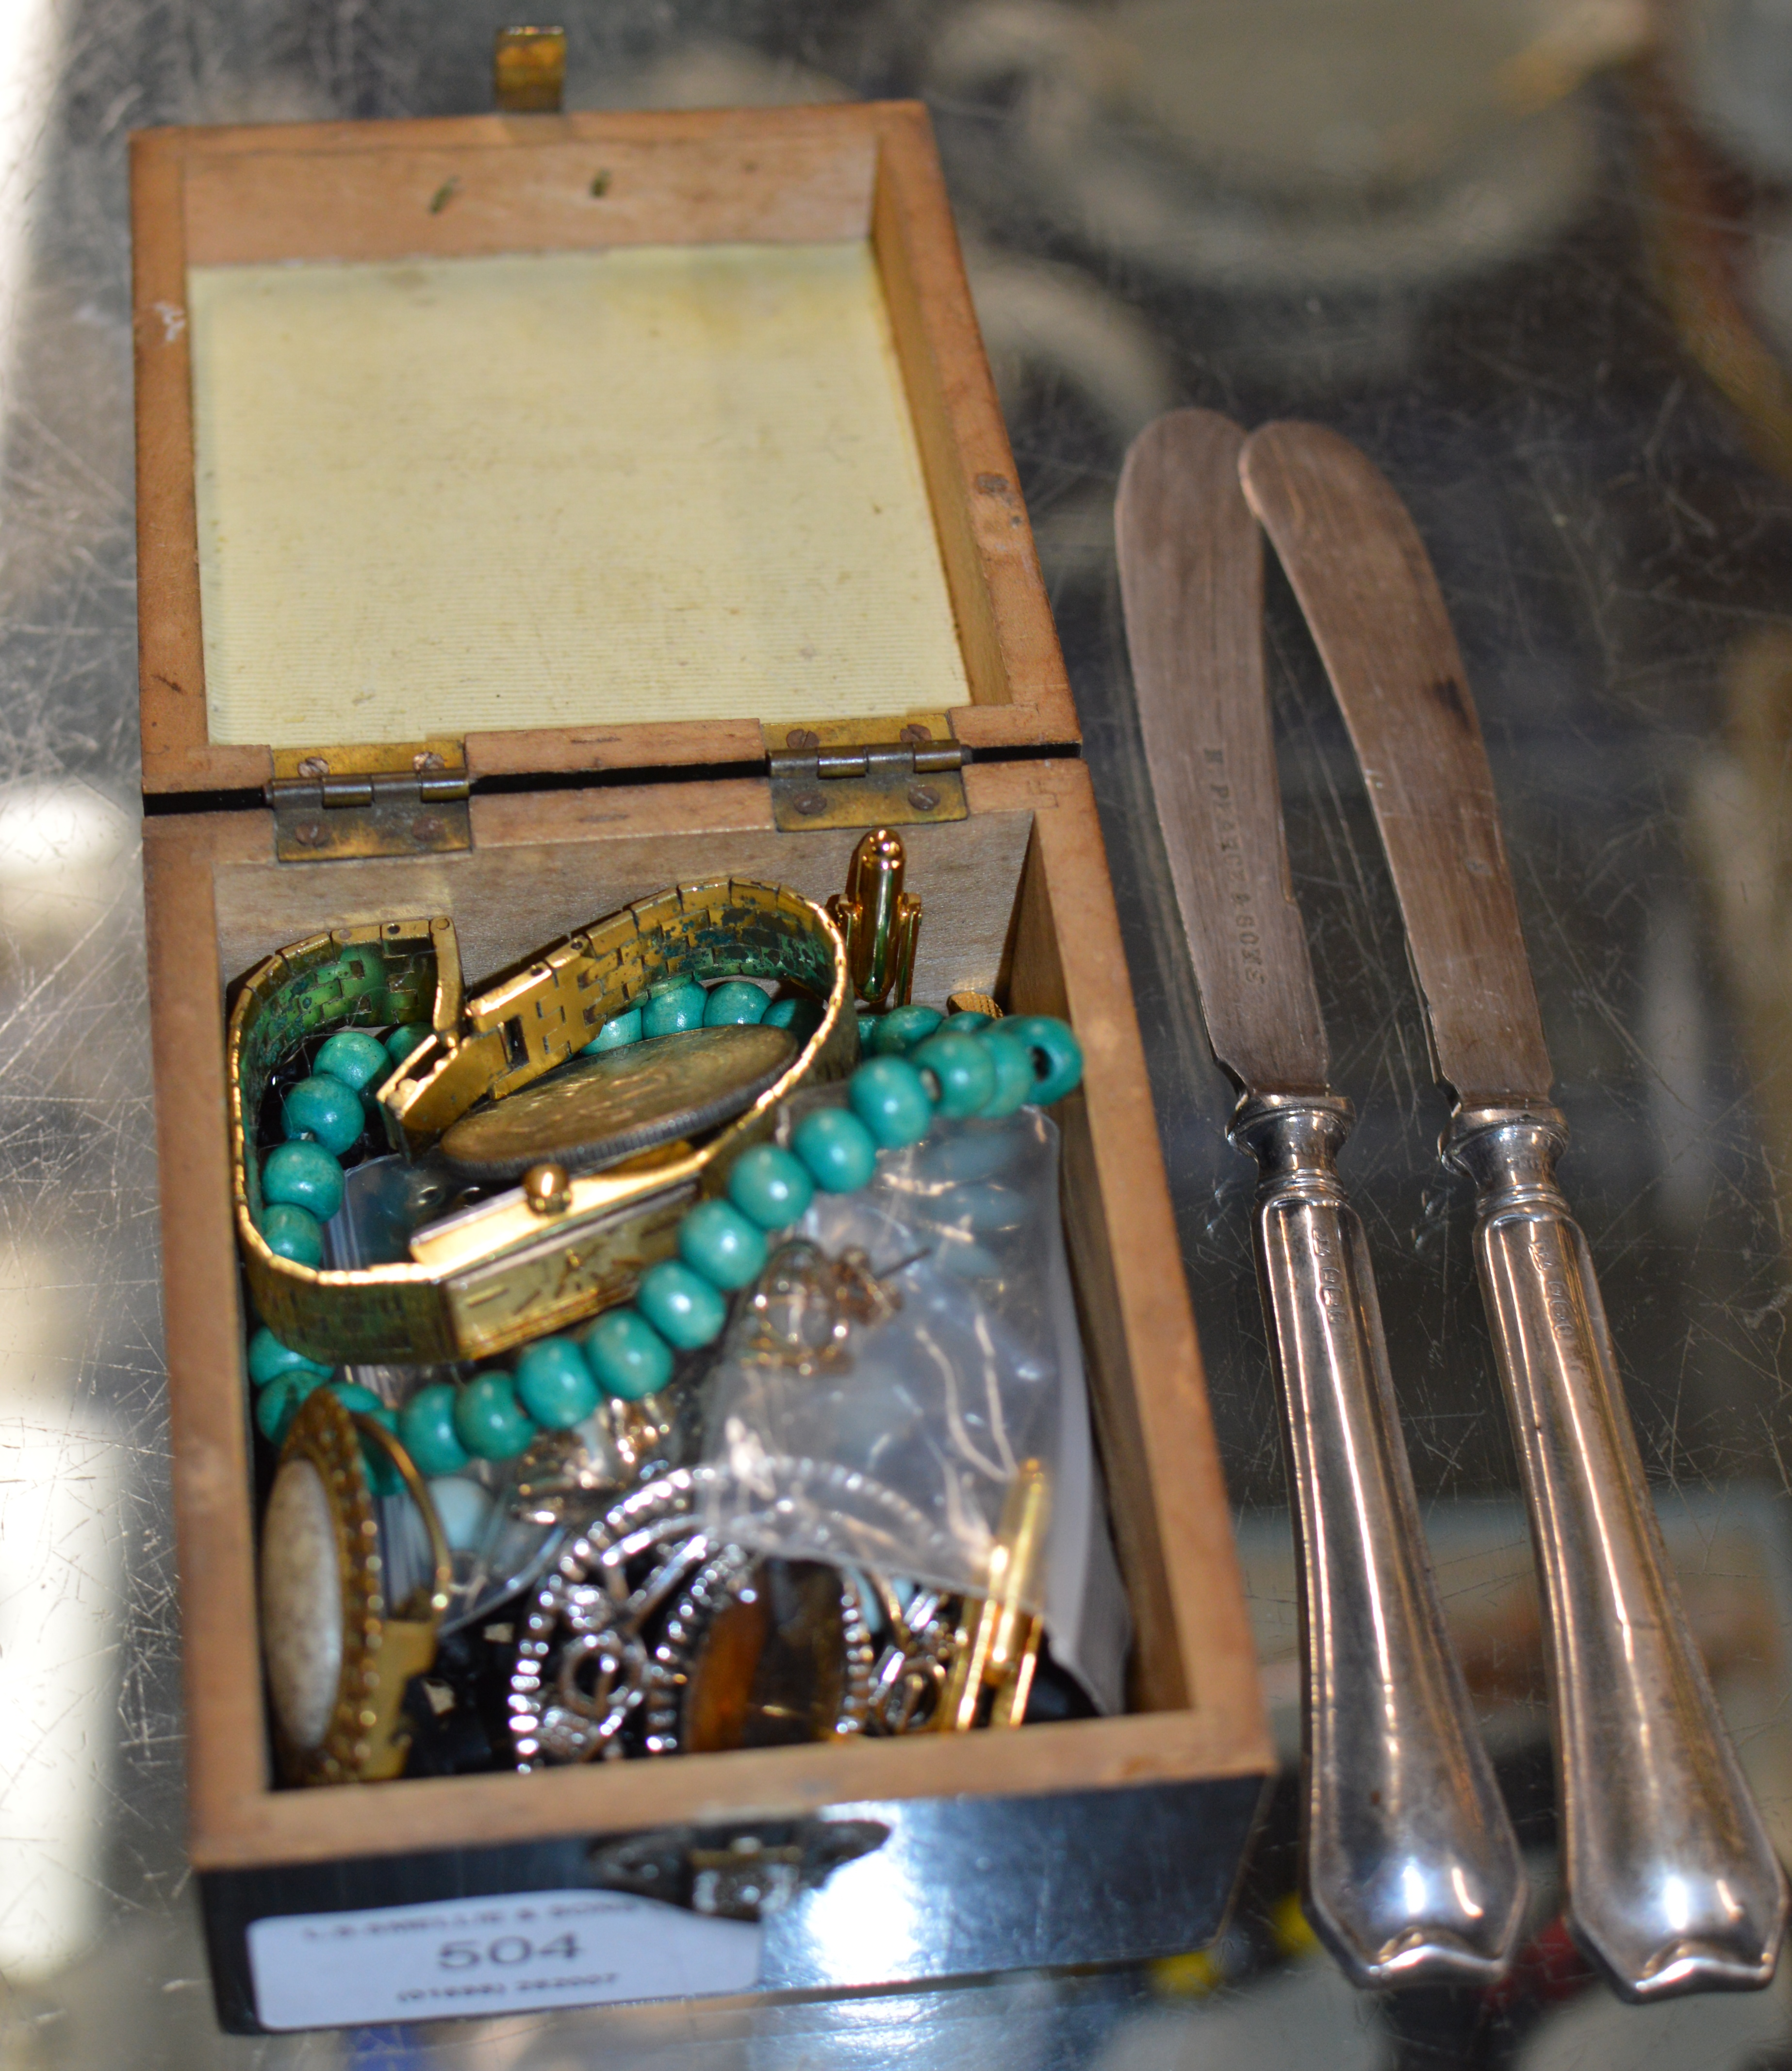 Lot 504 - 2 SILVER HANDLED KNIVES & SMALL QUANTITY OF COSTUME JEWELLERY BROOCHES, WATCHES, BEADS ETC